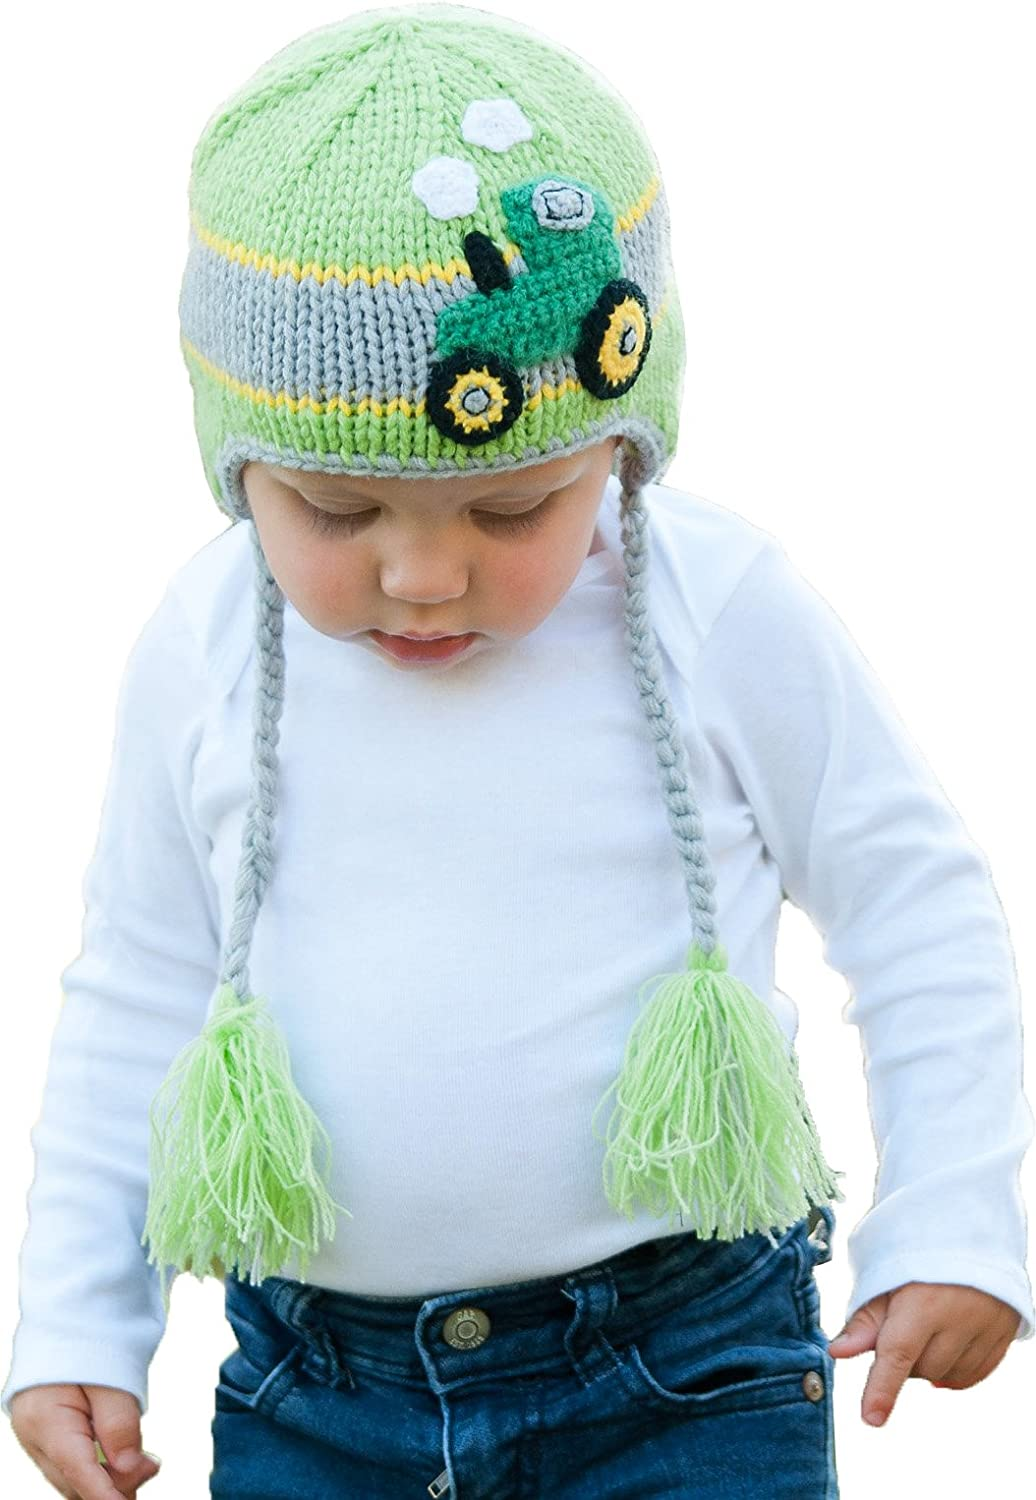 6d66e9e9070 Amazon.com  Huggalugs Baby and Toddler Childrens Farm Tractor Beanie Hat   Clothing